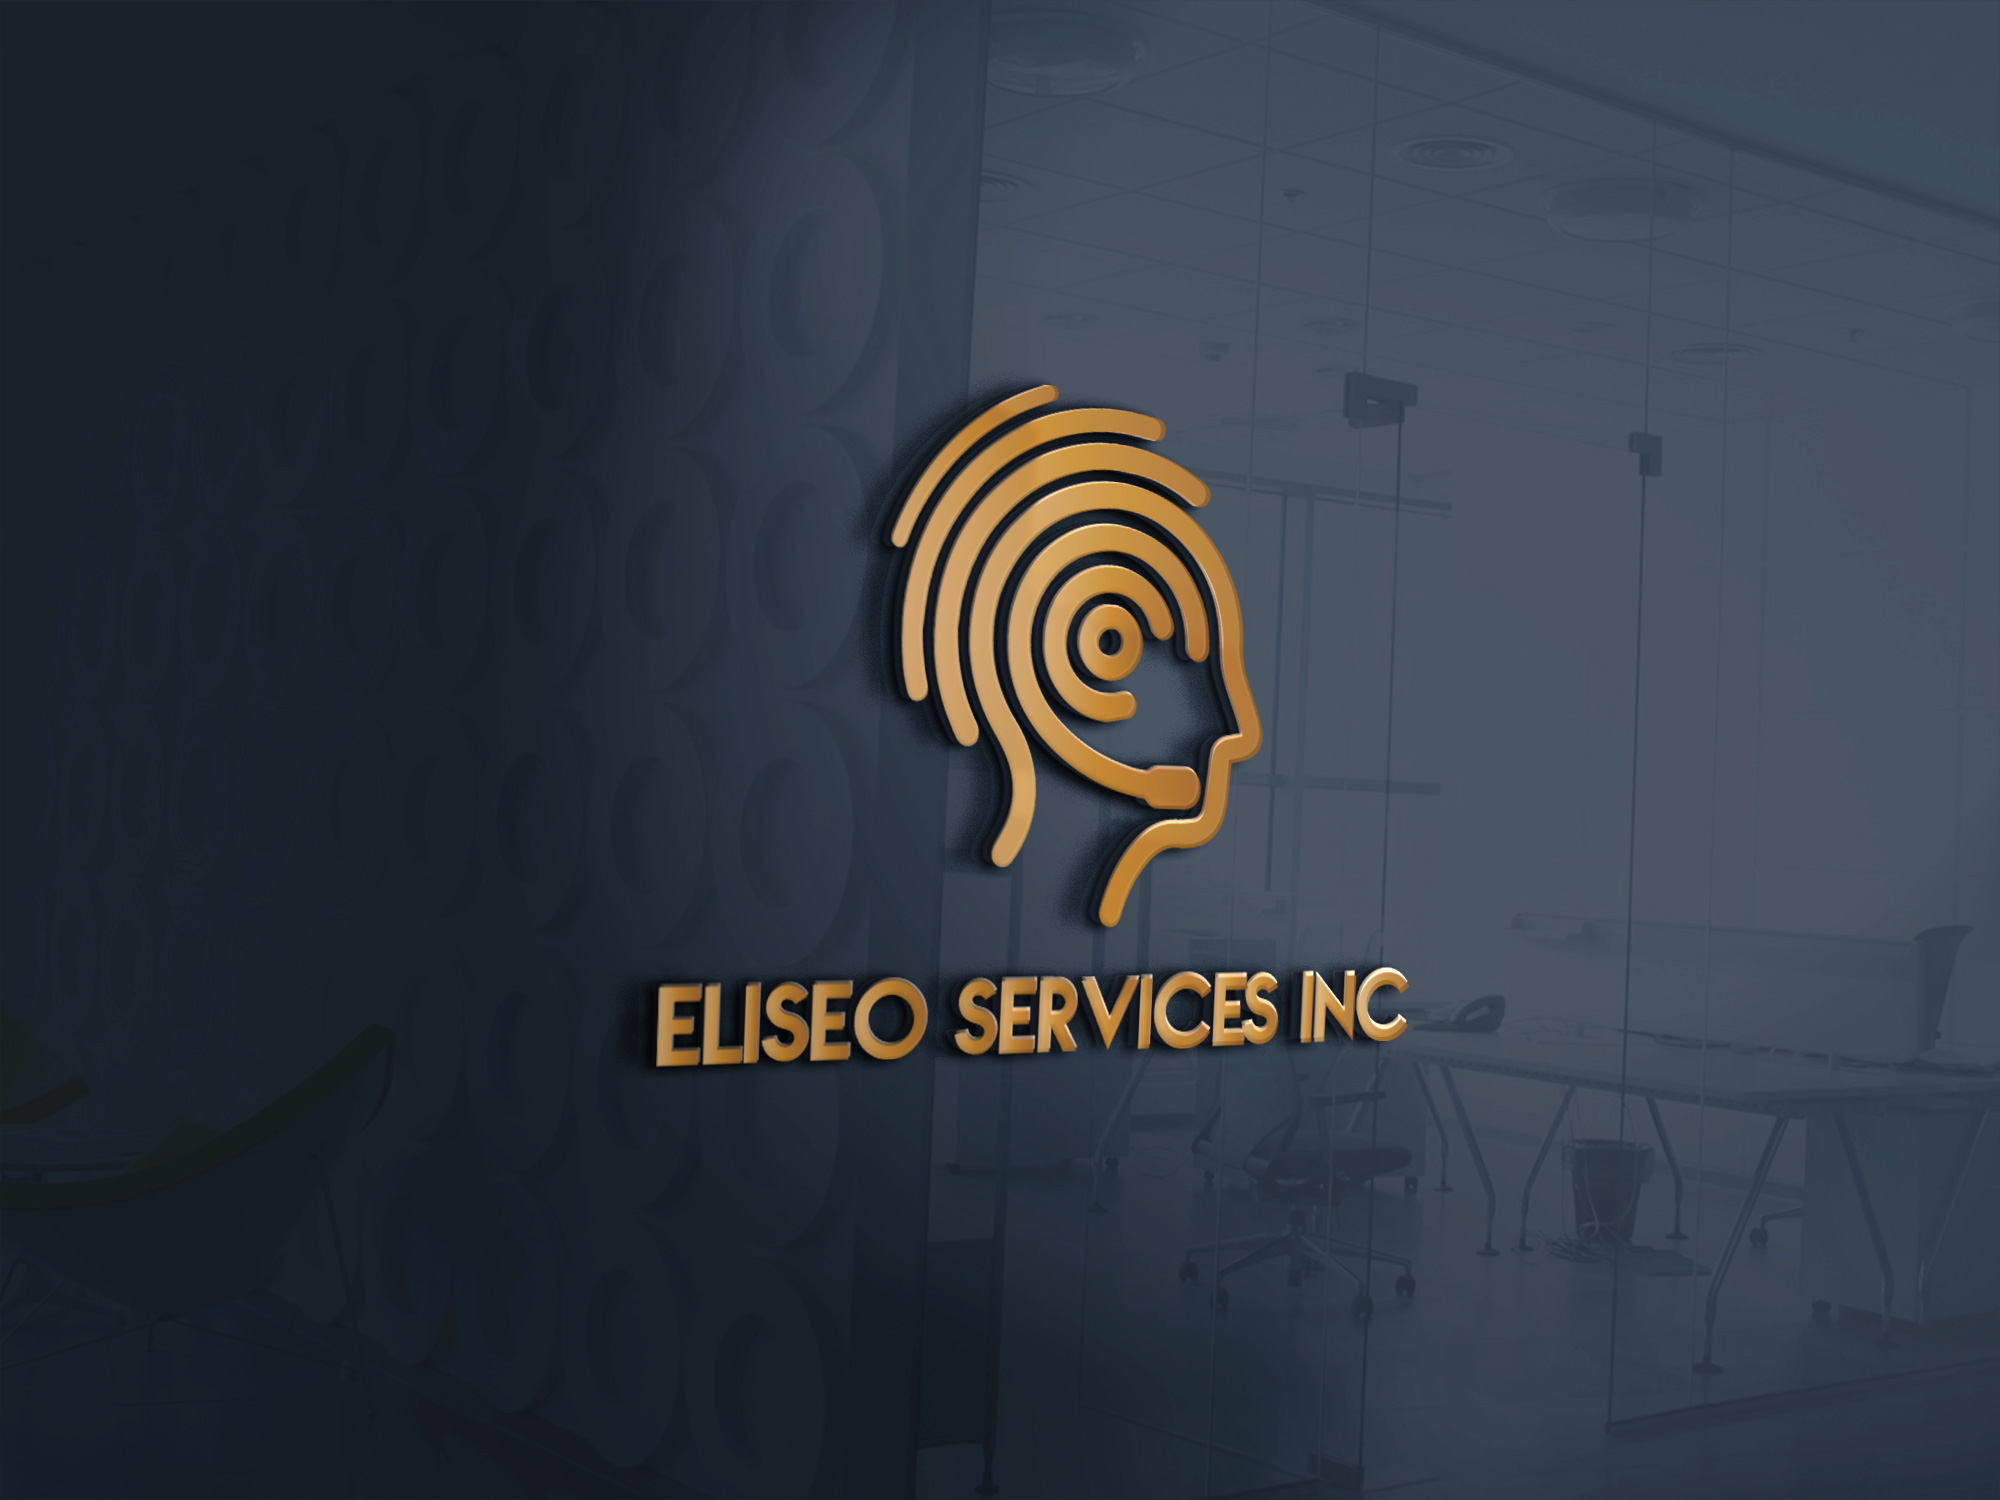 Eliseo Services Inc